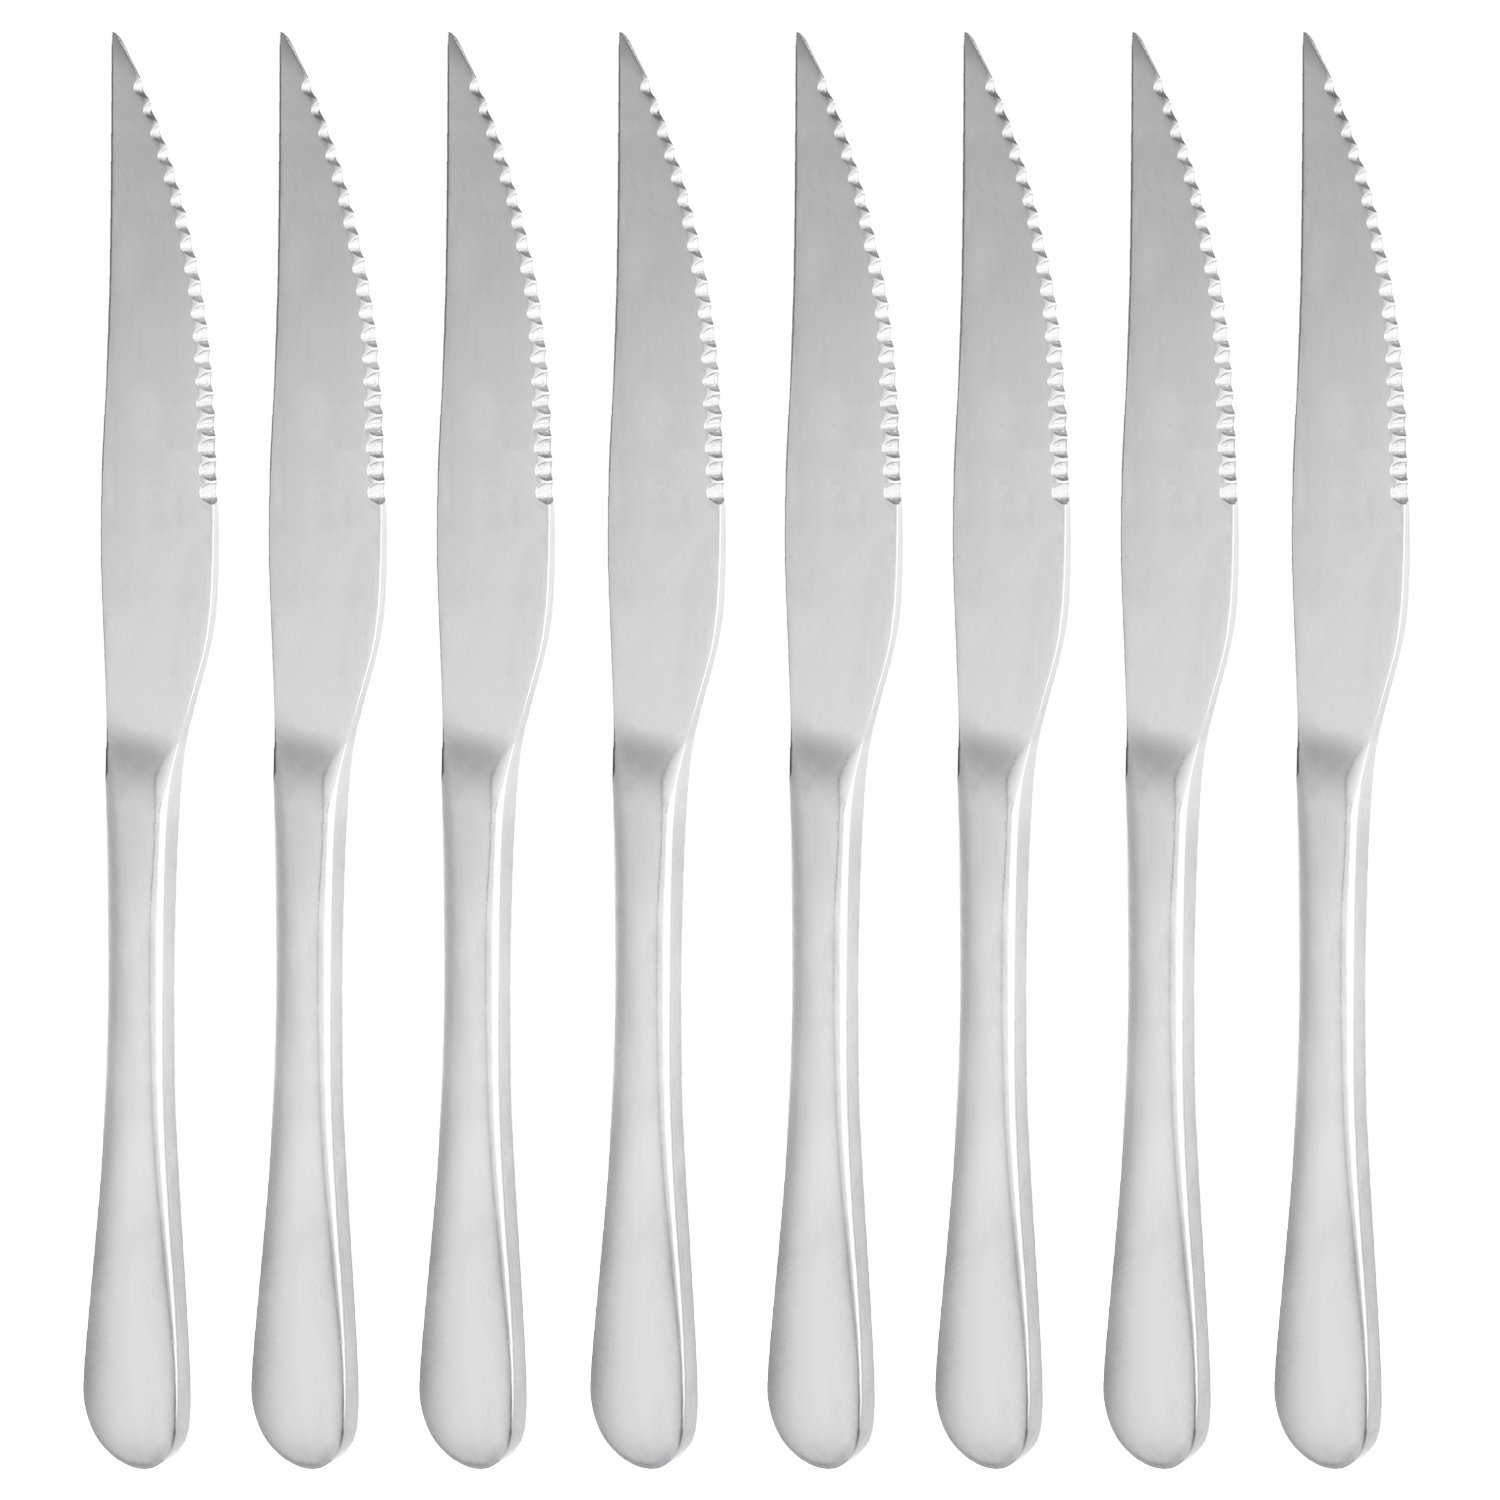 Dinner Forks, MCIRCO 8-piece Stainless Steel Dinner Forks Tableware Set(Dinner Fork) by Mcirco Fork-Set-L